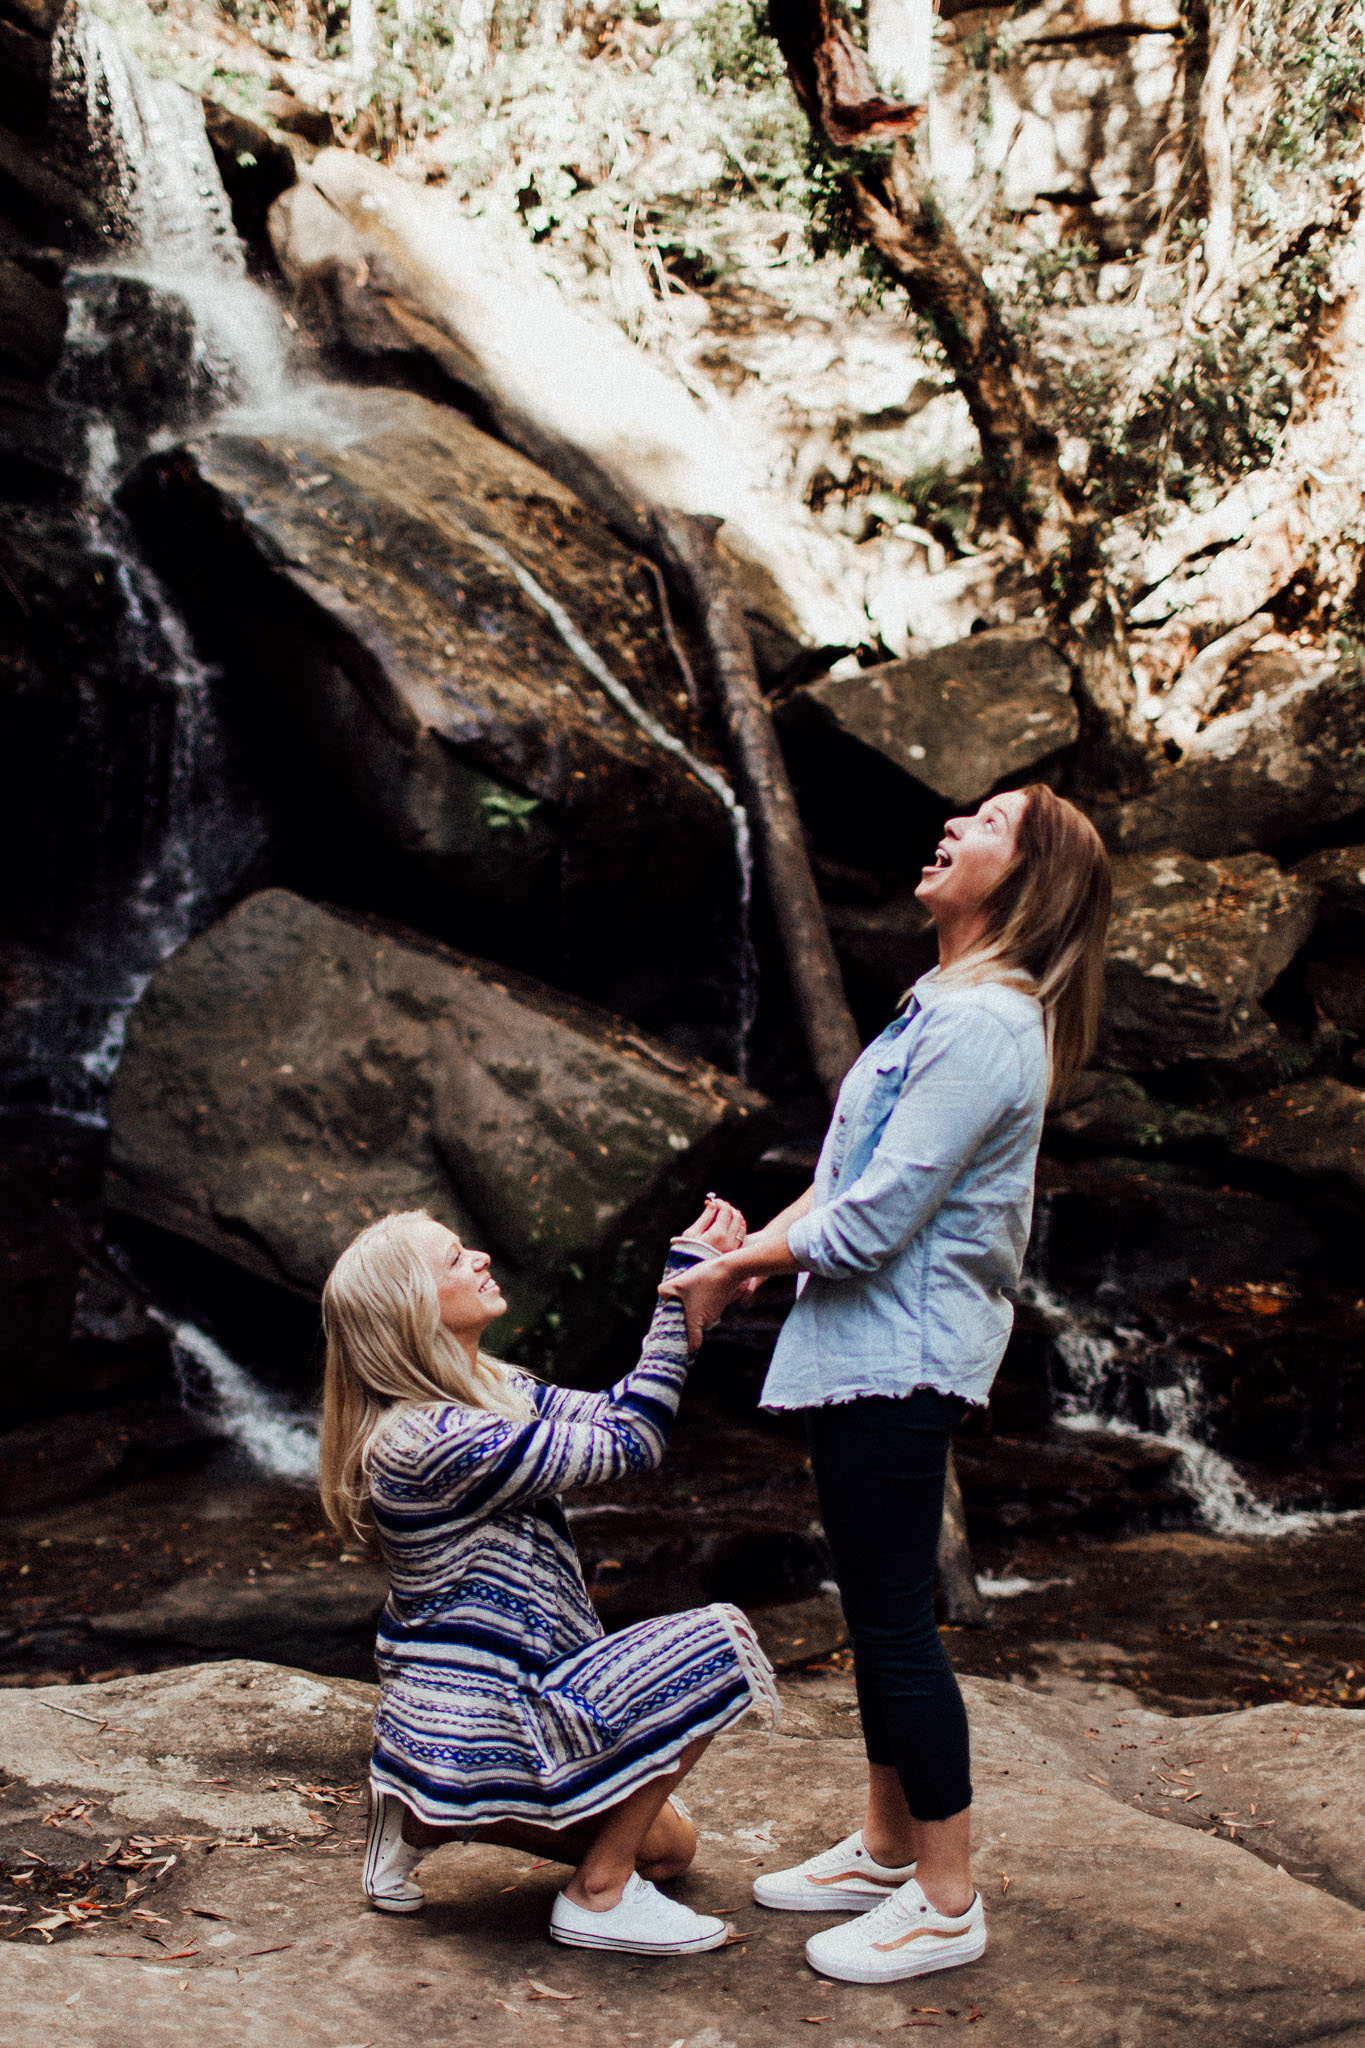 Bri_Gem_Proposal_LaurenAnnePhotography-1008.jpg